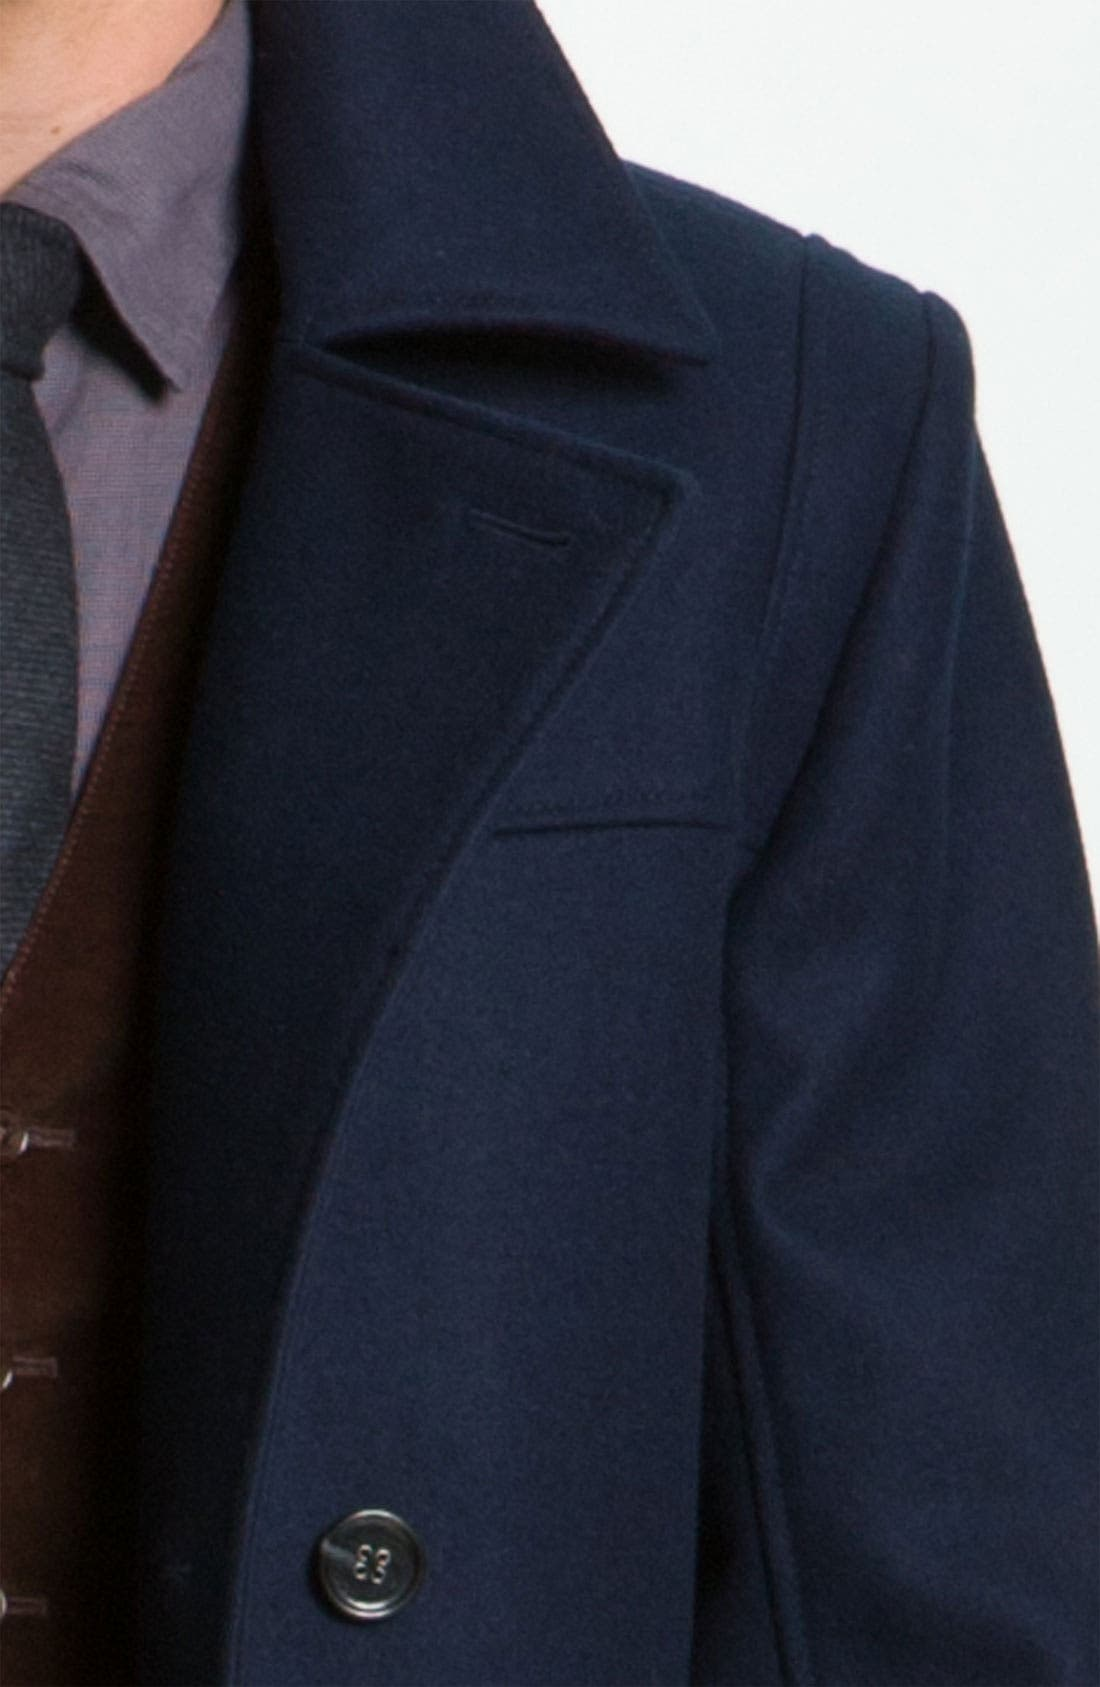 Alternate Image 3  - HUGO 'Brano' Double Breasted Wool Blend Peacoat